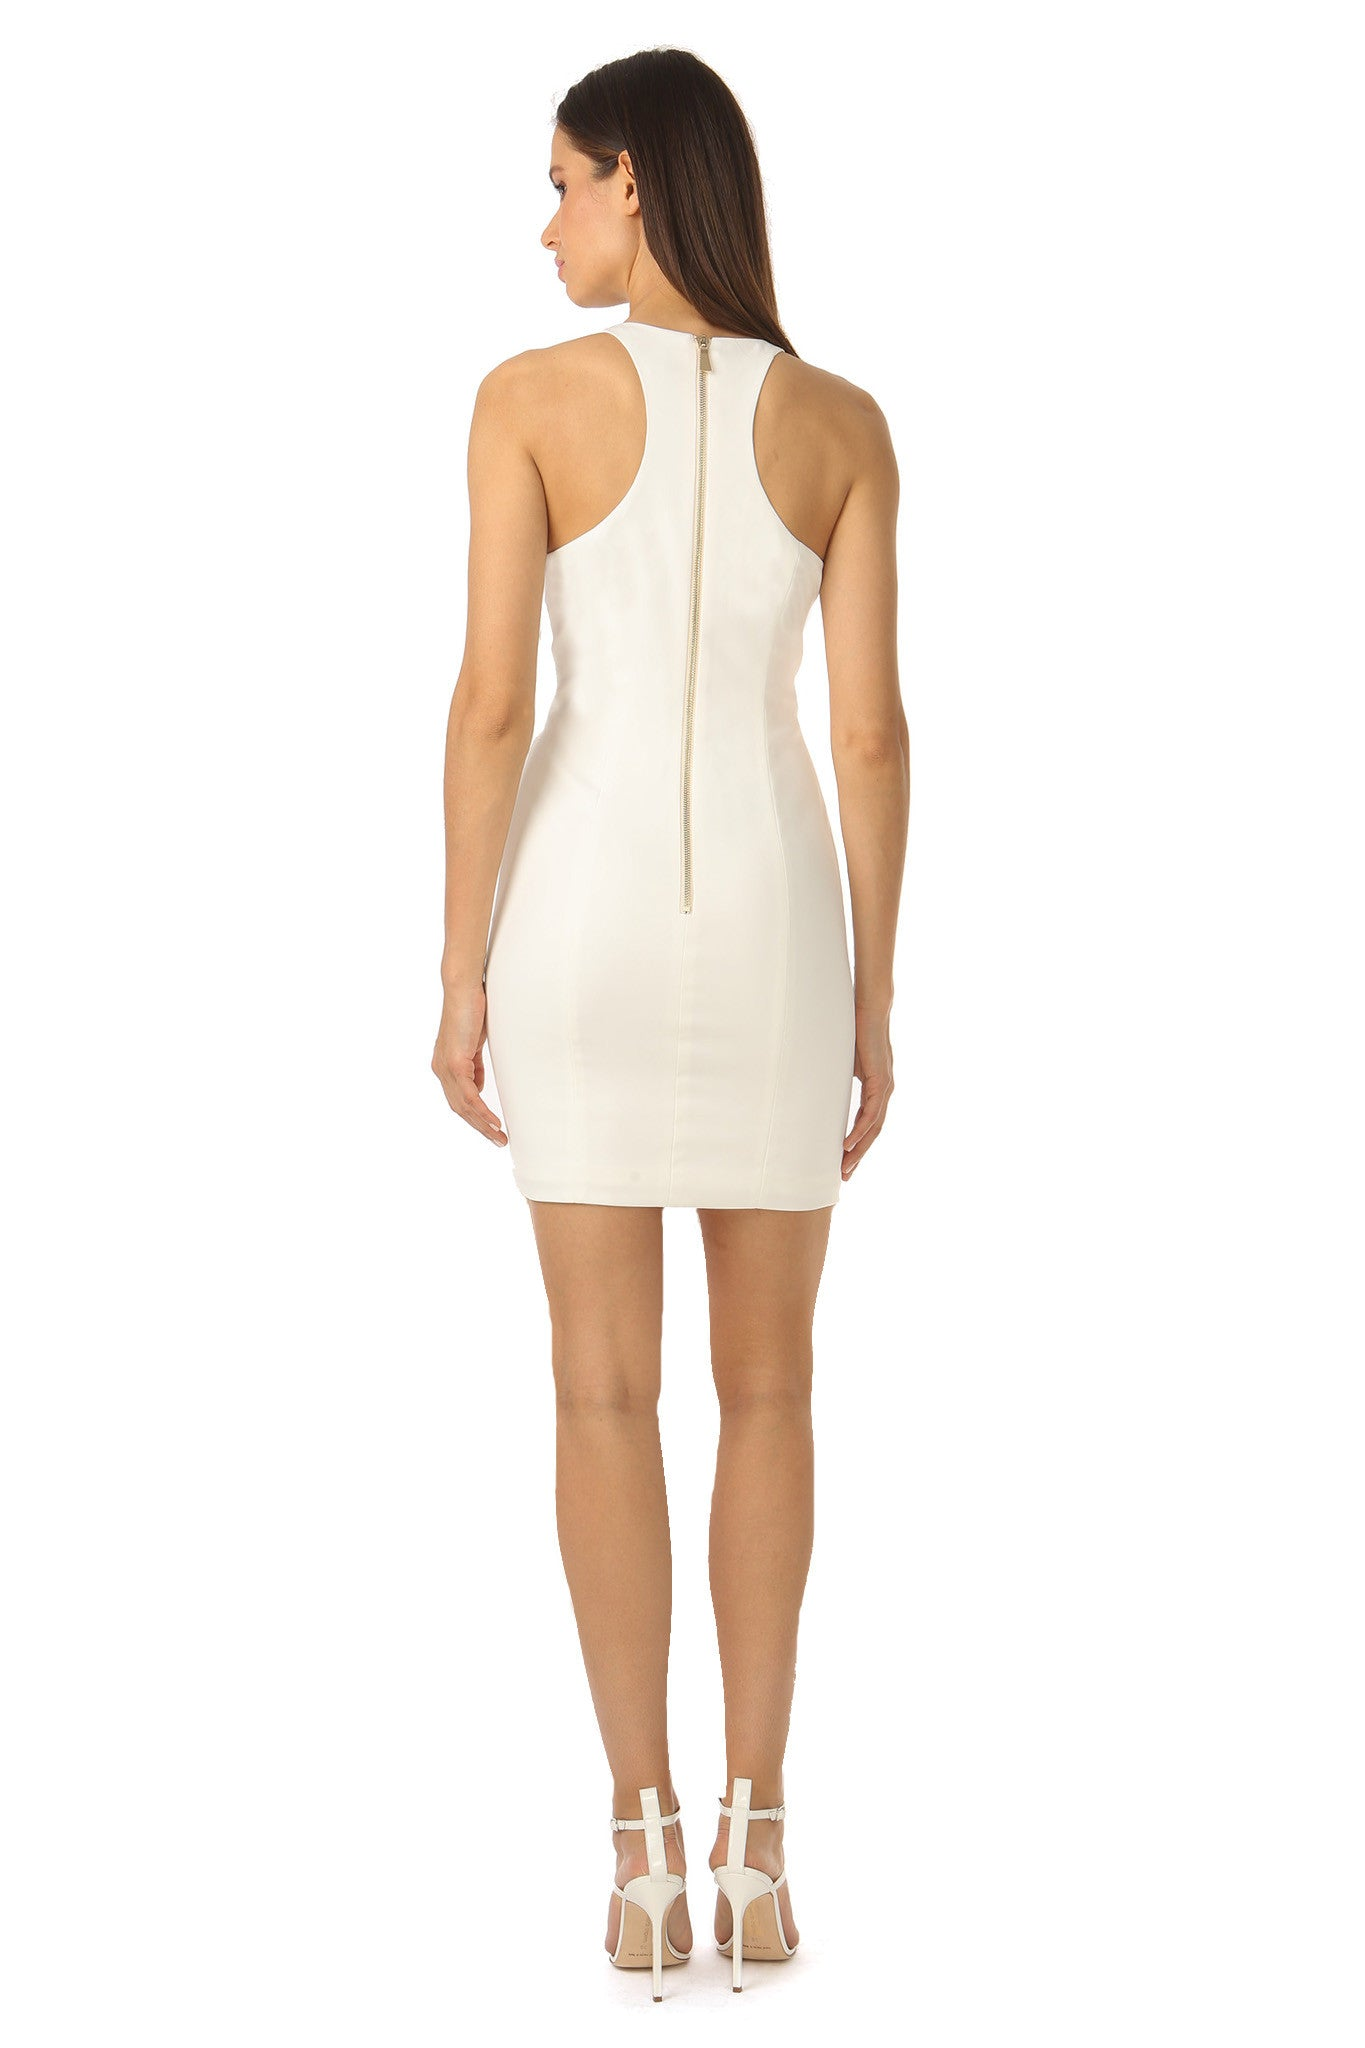 Jay Godfrey Deep V-Neck Ivory Mini Dress - Back View